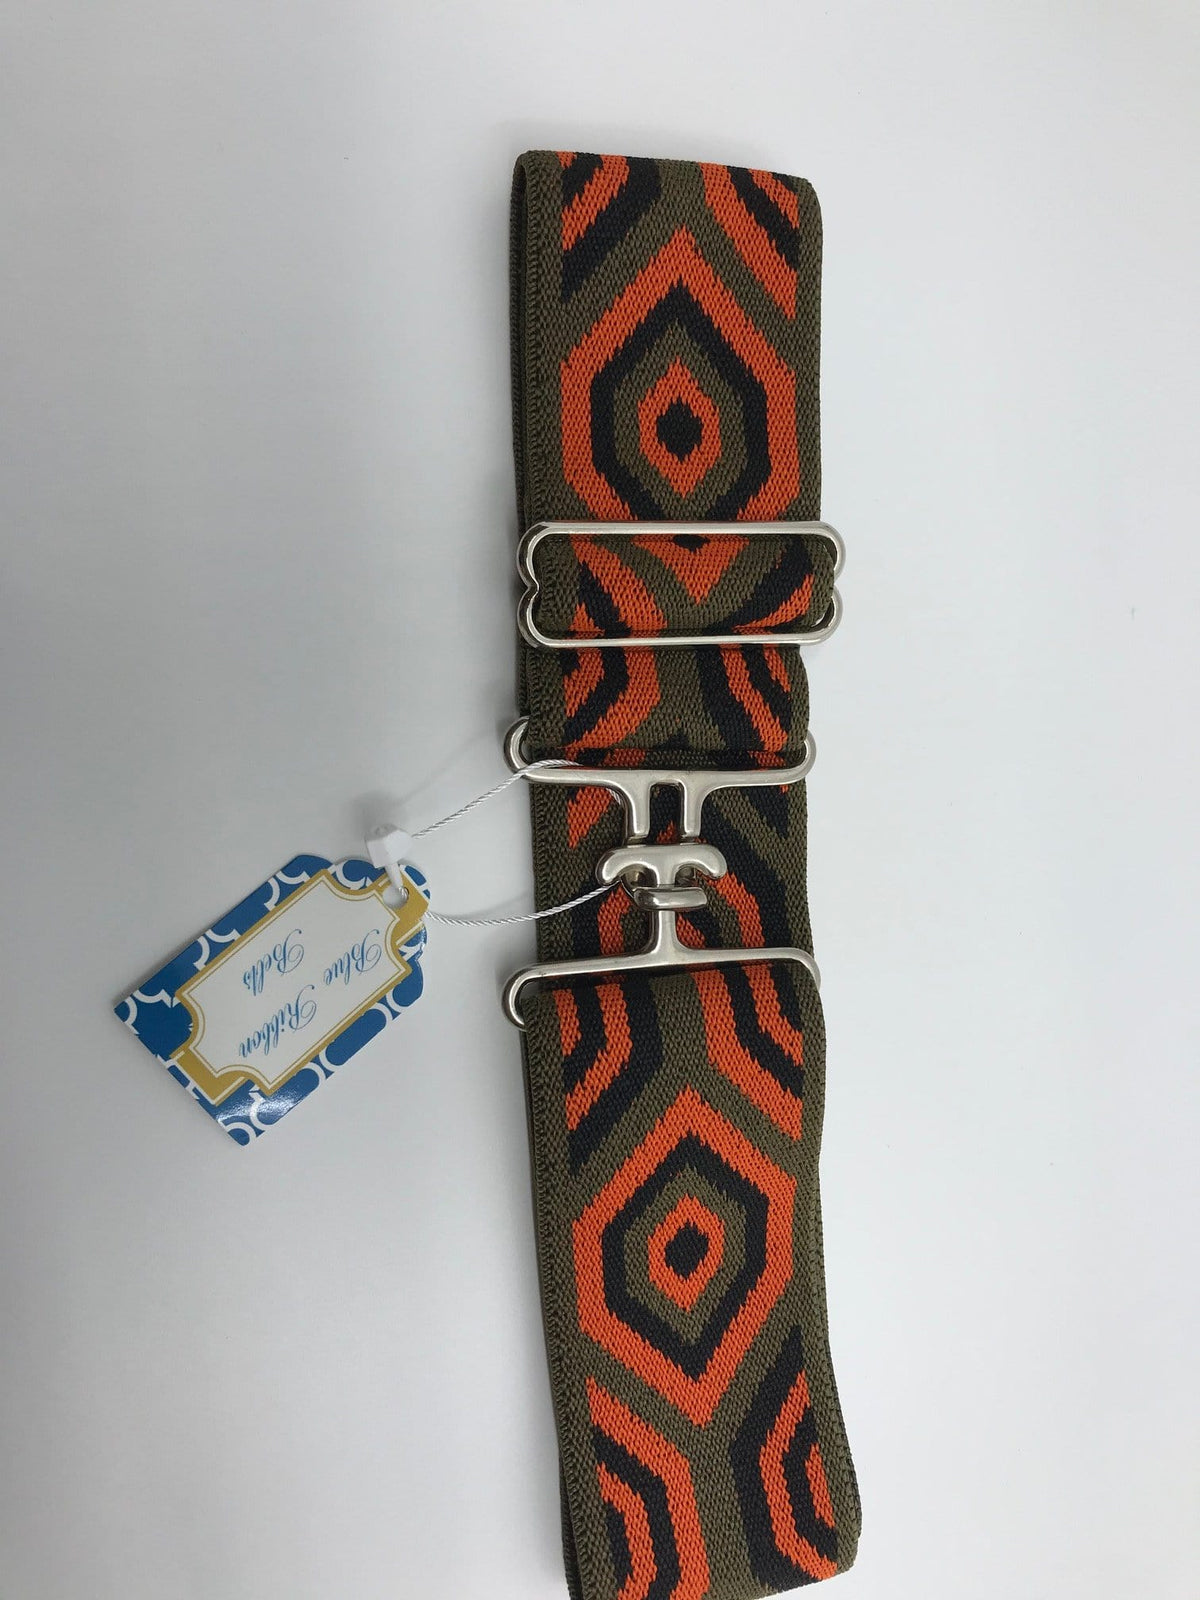 Blue Ribbon Belts Belt Orange/Black/Green Diamond Blue Ribbon Belts - 2 Inch equestrian team apparel online tack store mobile tack store custom farm apparel custom show stable clothing equestrian lifestyle horse show clothing riding clothes horses equestrian tack store